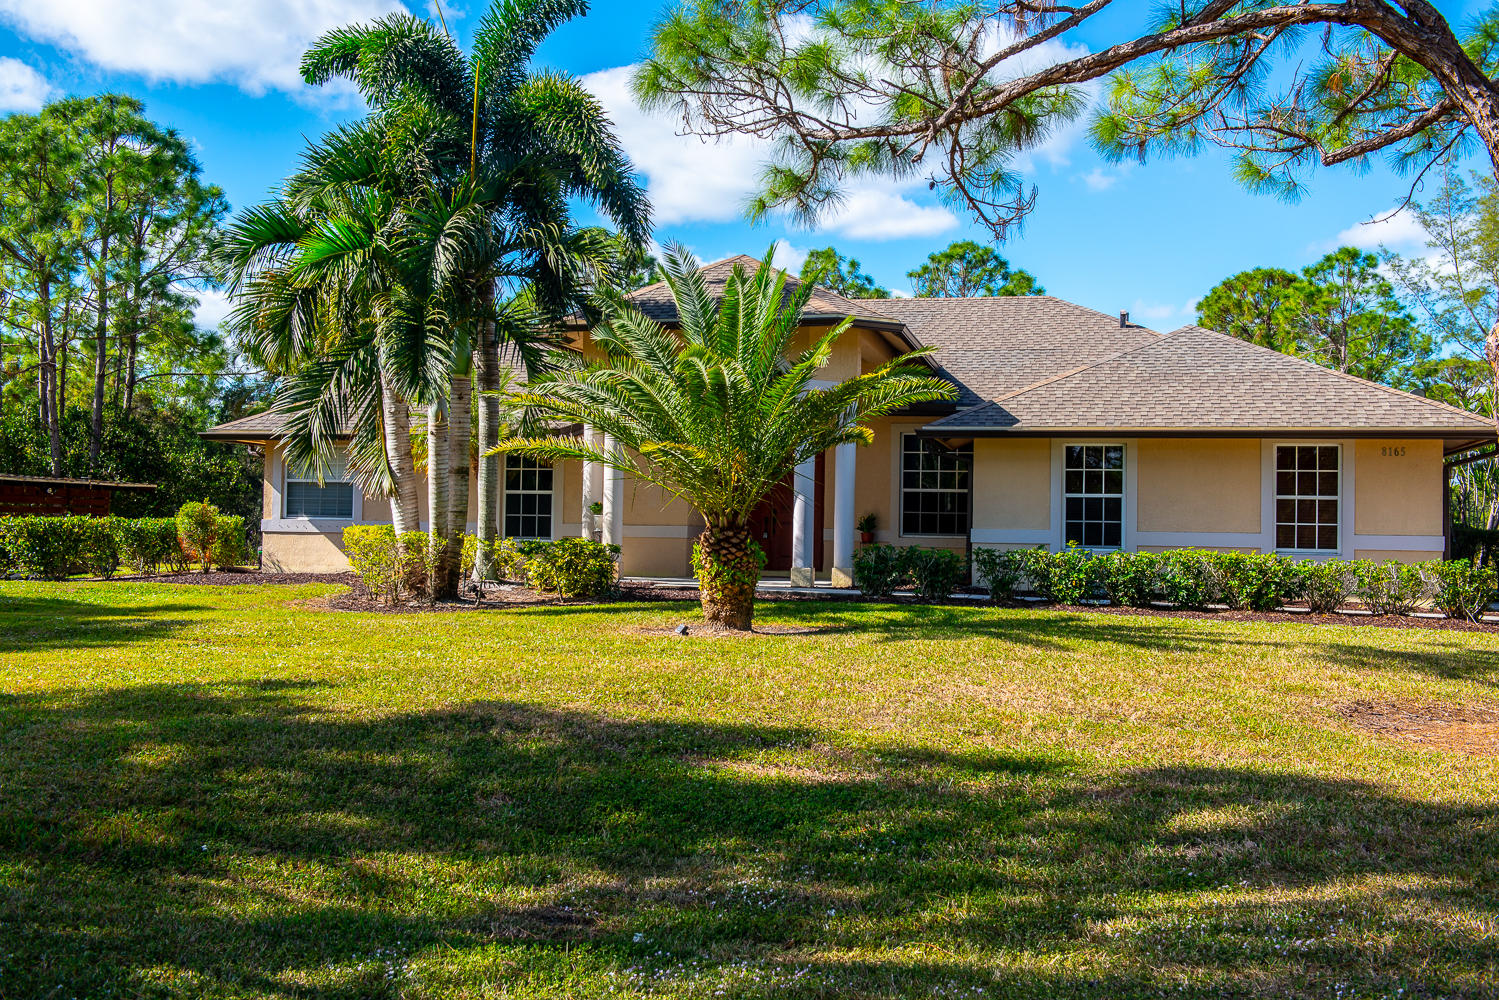 Home for sale in Acreage Unincorporated West Palm Beach Florida